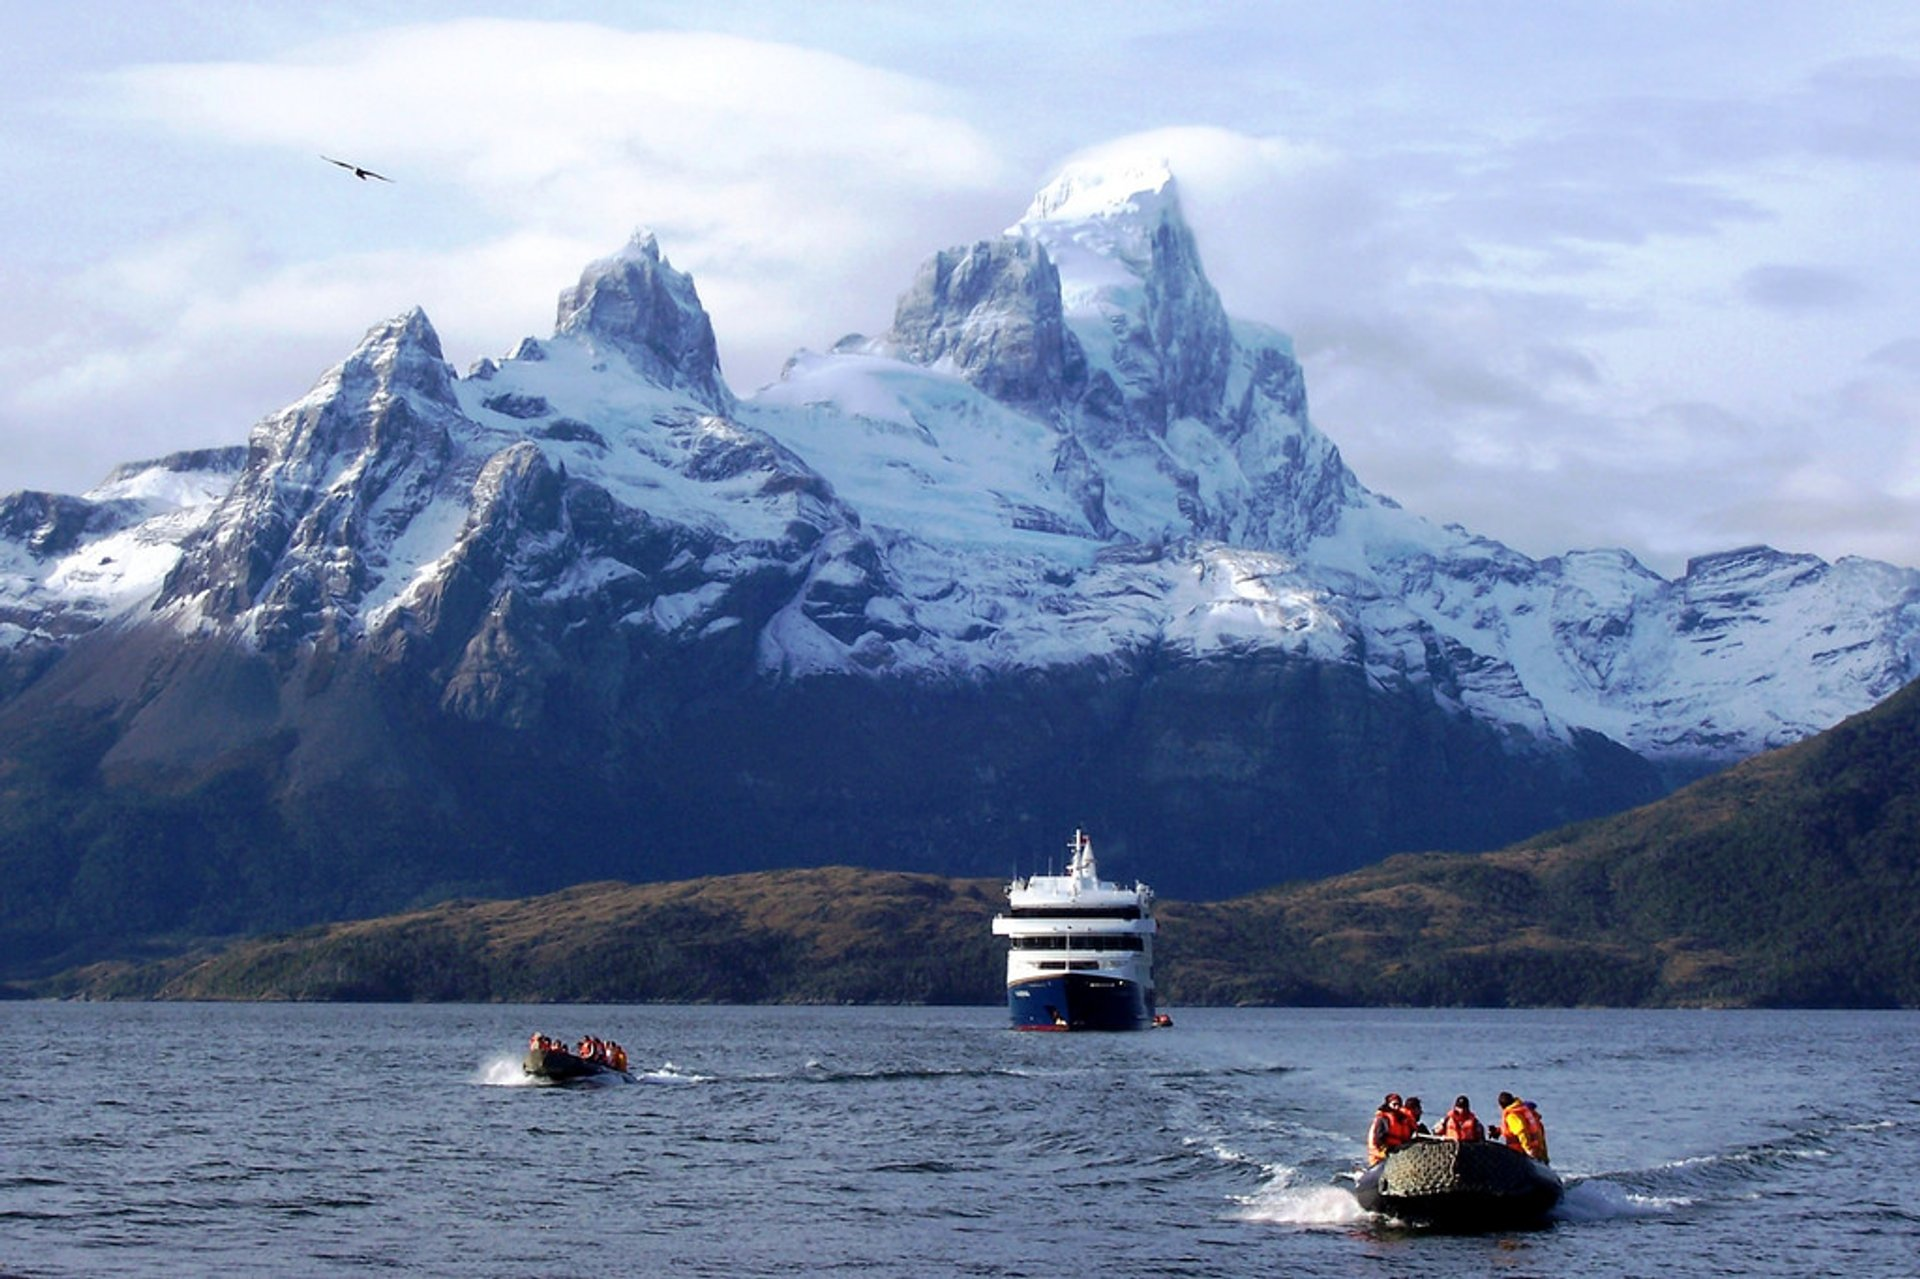 Sailing and Cruising in Chile 2020 - Best Time